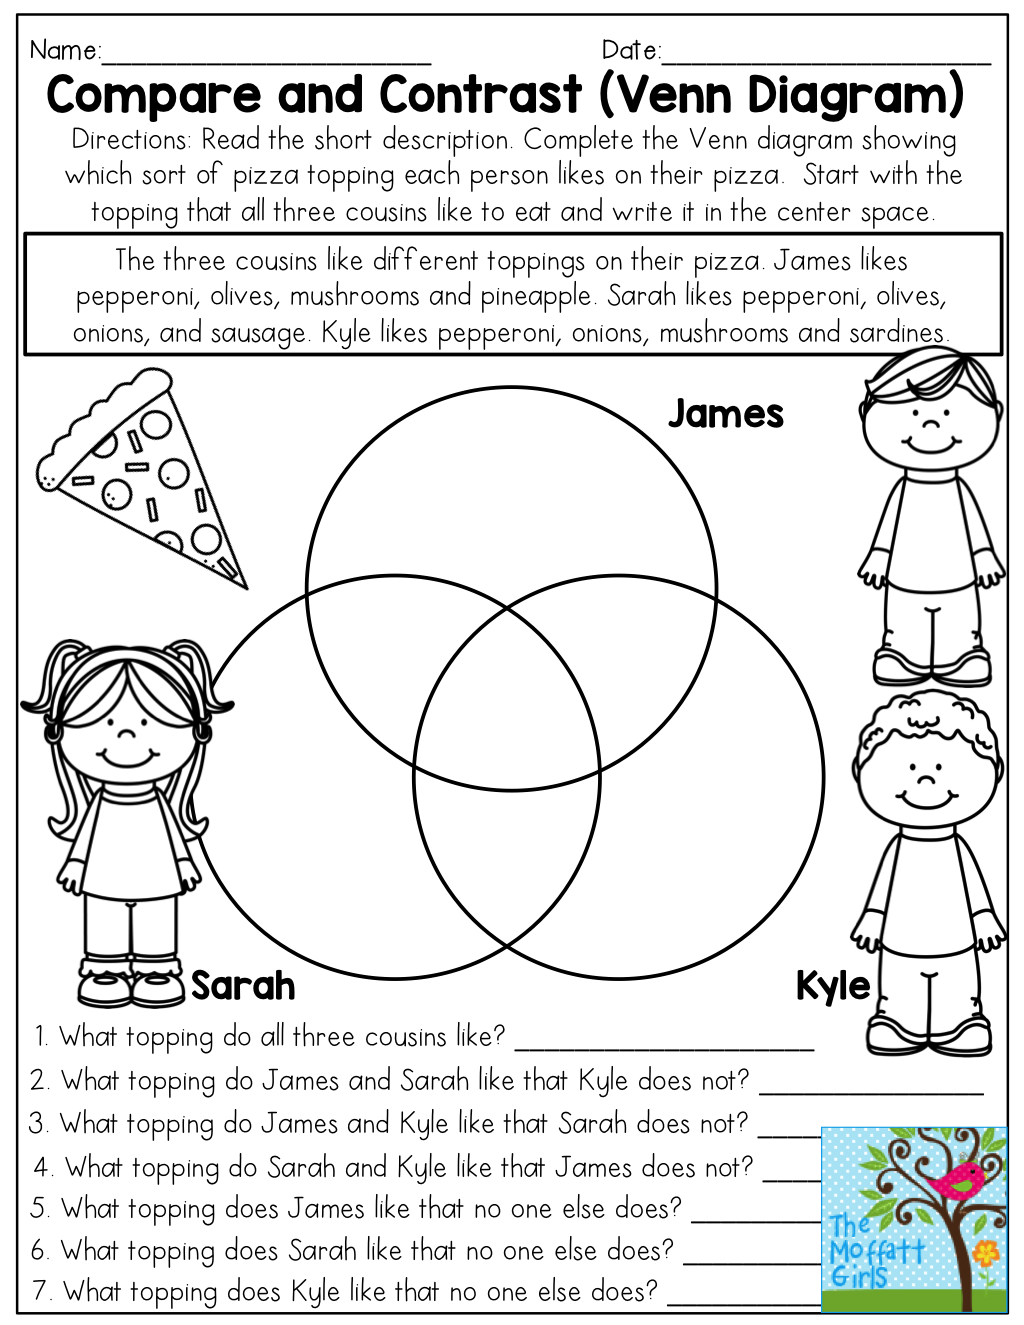 hight resolution of compare and contrast venn diagram 3 things read the short description complete the venn diagram and answer the questions teaching core concepts for 3rd